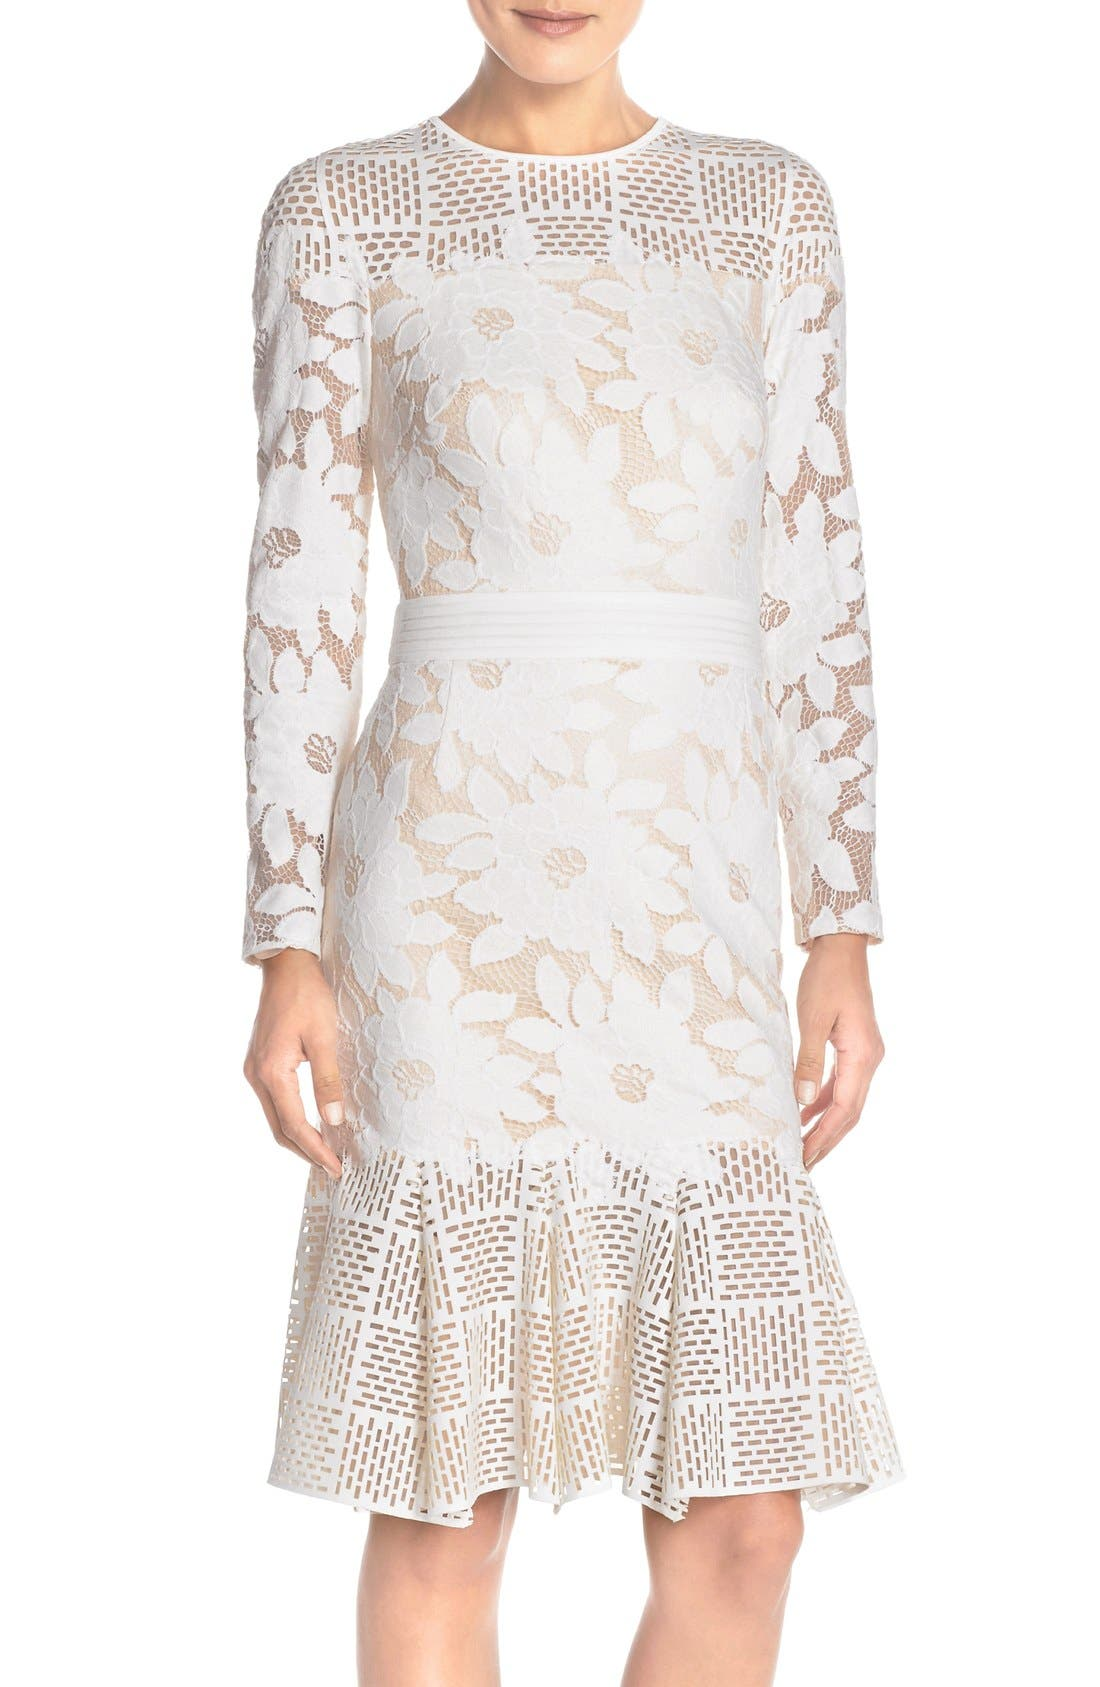 Alternate Image 1 Selected - Tadashi Shoji Lace & Cutout Neoprene Sheath Dress